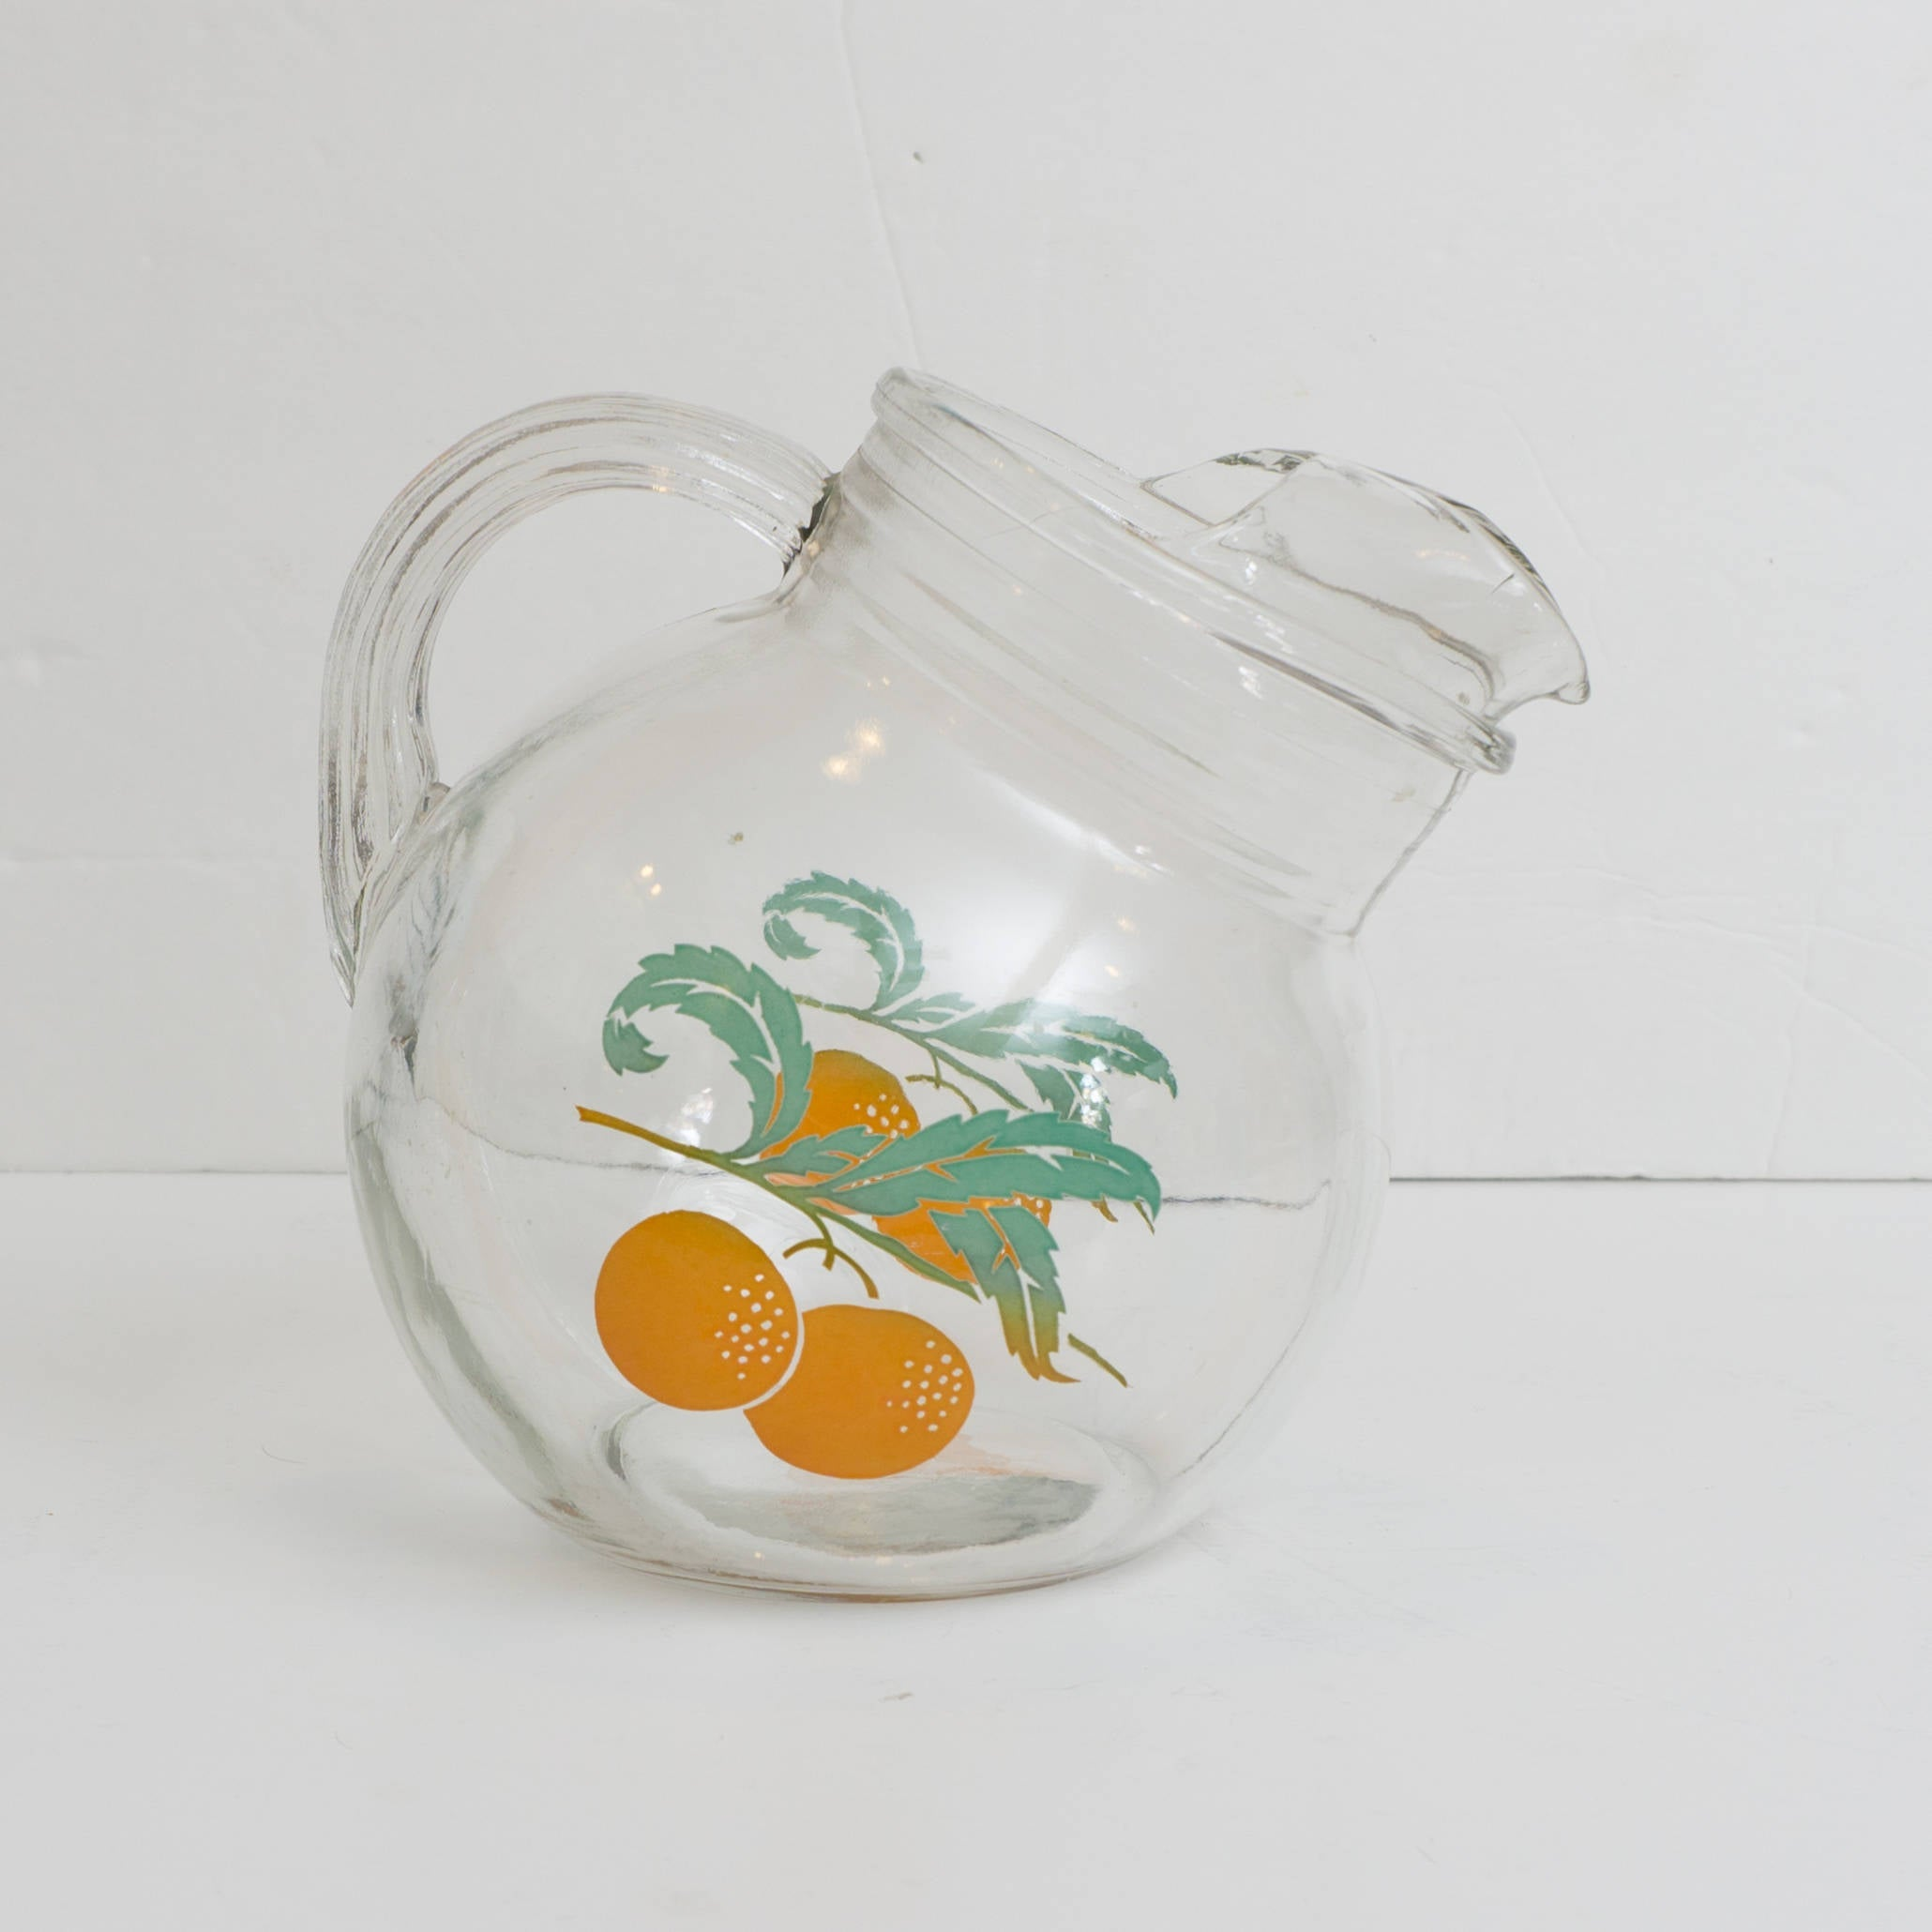 Vintage Mid Century Small Glass Tilt Pitcher w/ Oranges